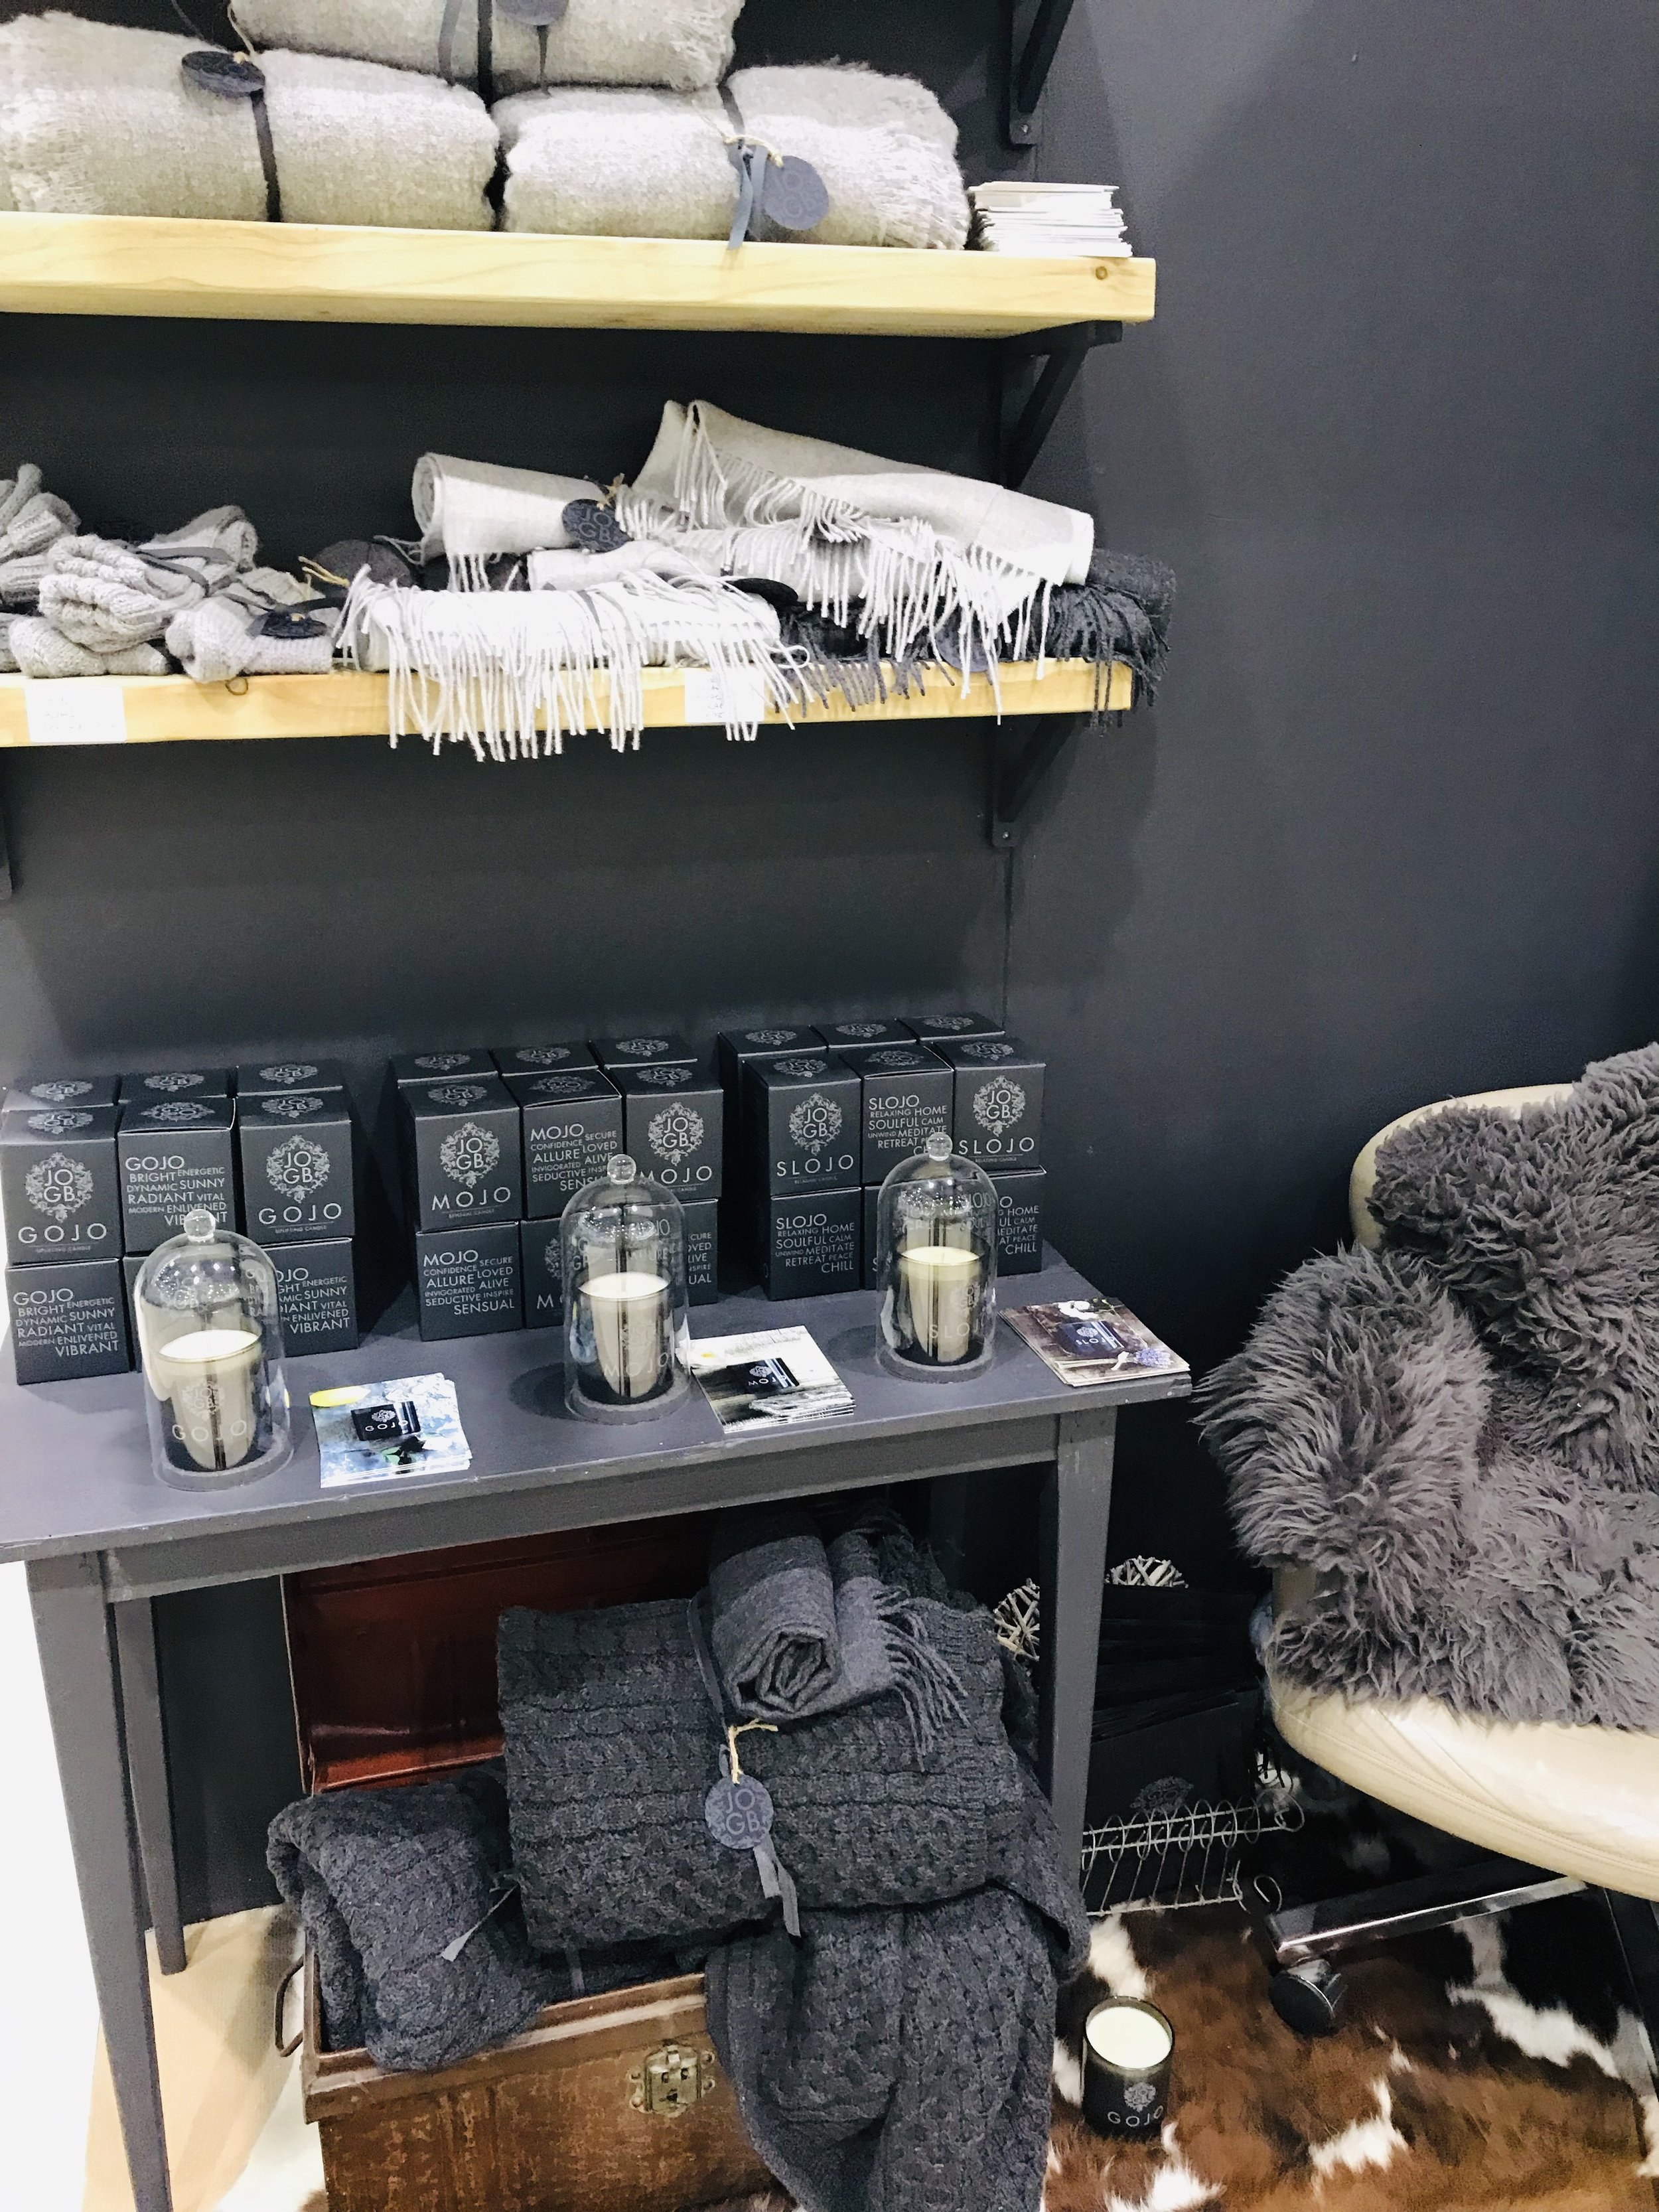 Sneak peek at our JOGB Pop Up Shop at the 2019 Country Living Spring Fair